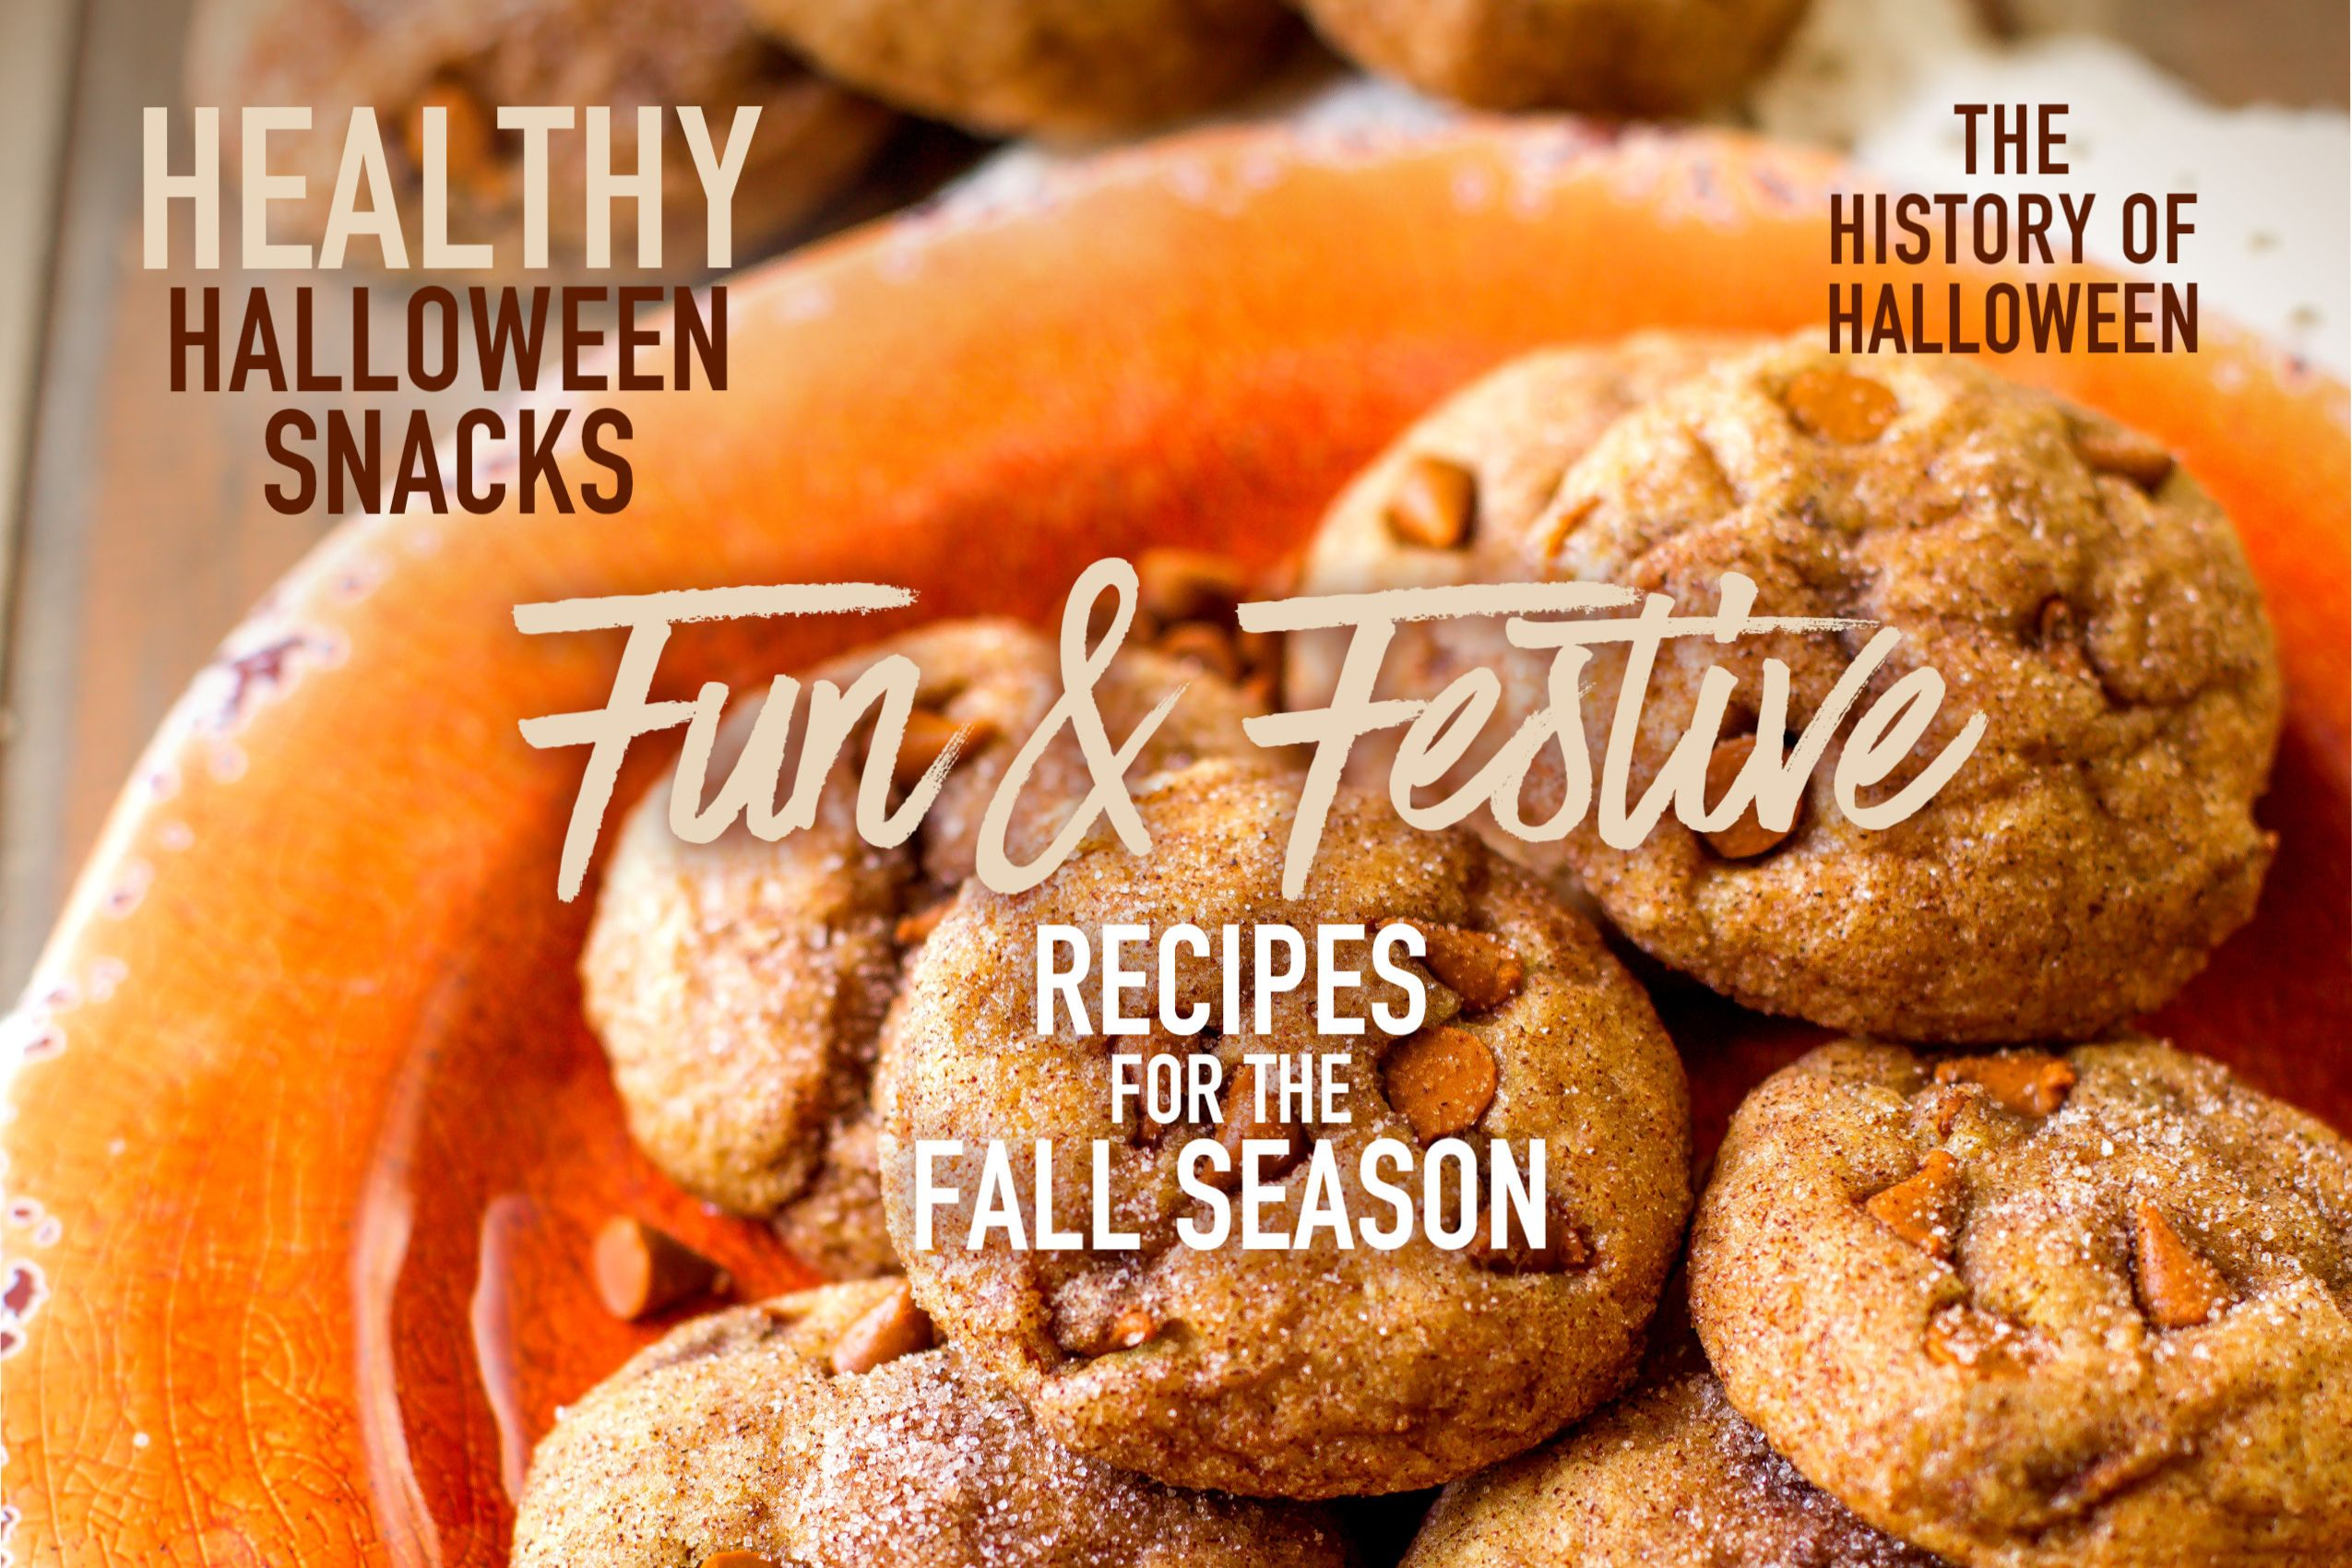 Find spook tacular Halloween recipes in our free holiday eBook